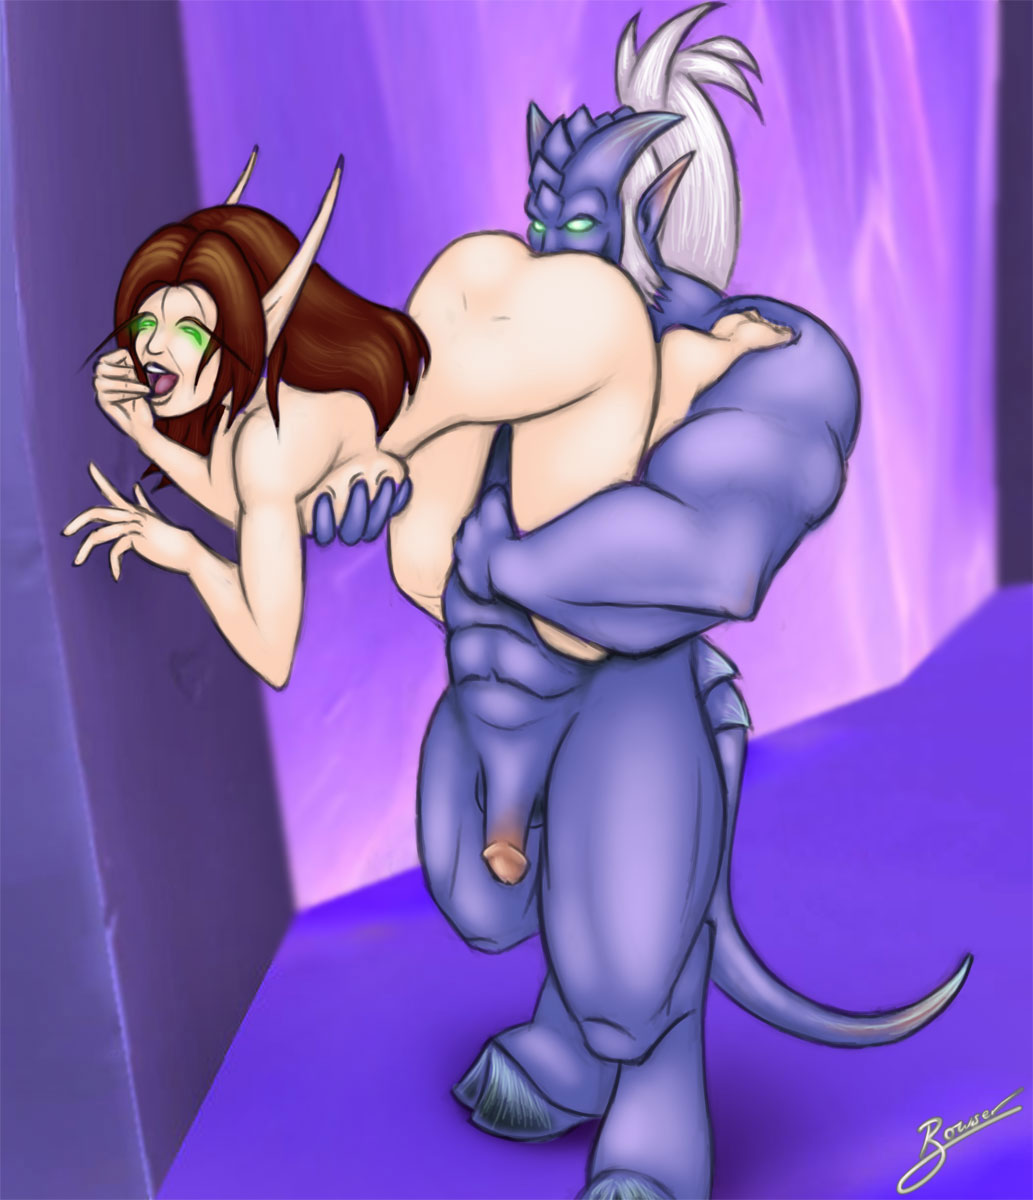 Draenei gets fucked sexy gallery